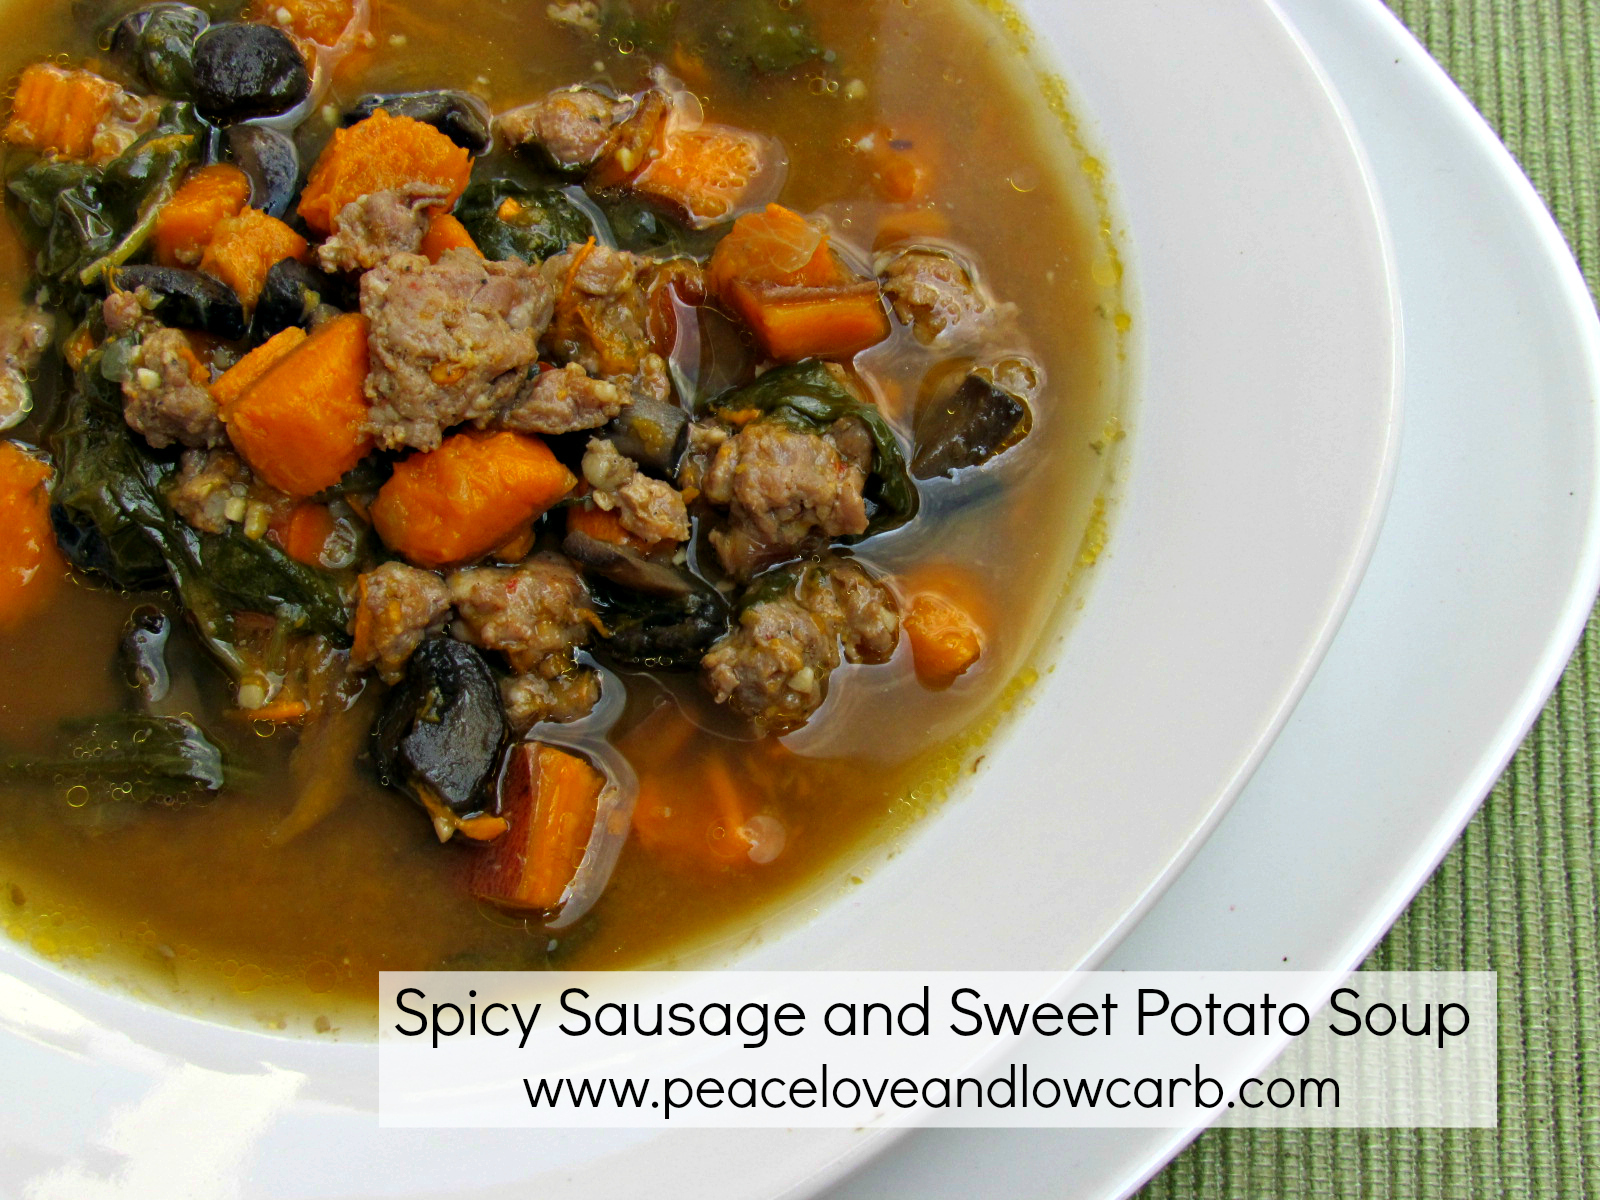 Spicy Sausage, Sweet Potato Soup – Low Carb, Gluten Free, Paleo